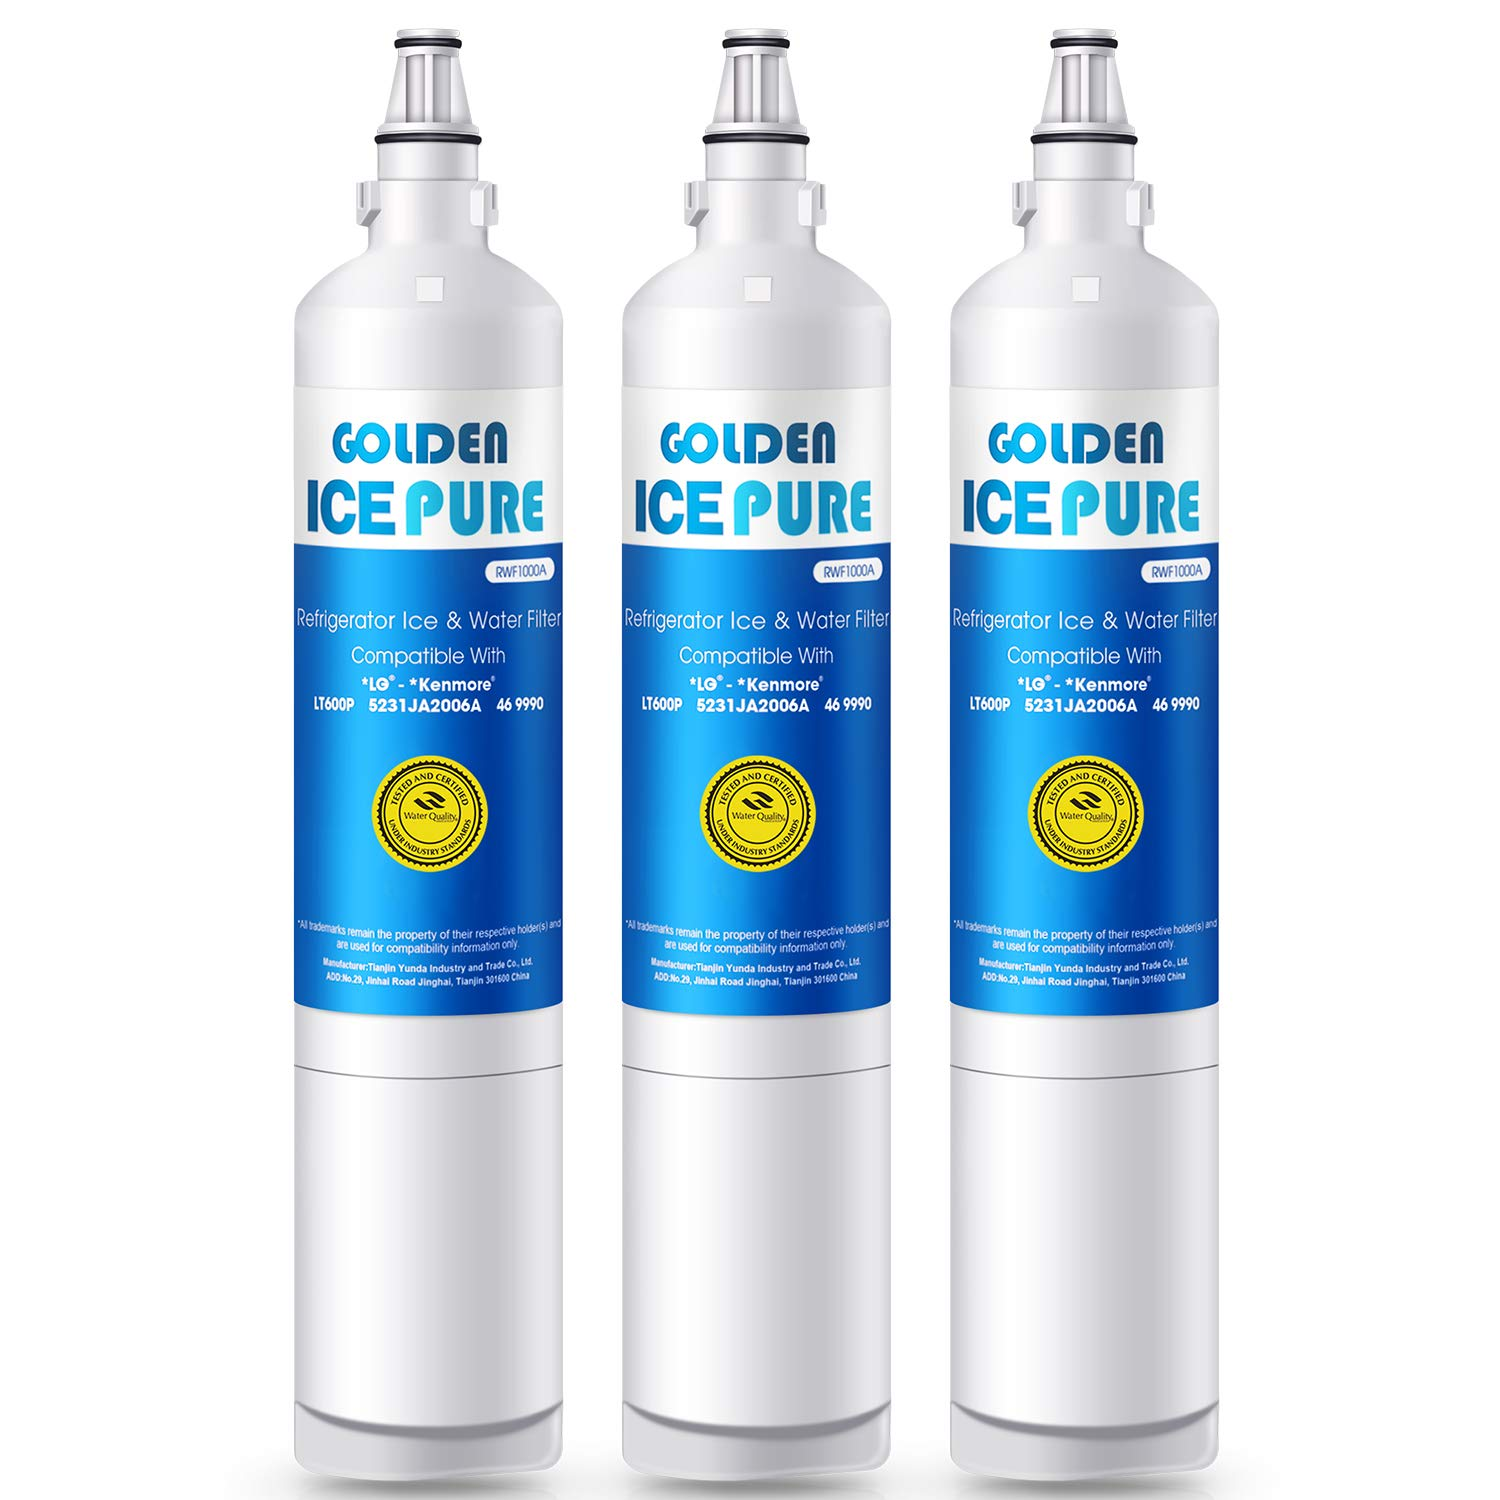 GOLDEN ICEPURE LT600P Replacement Refrigerator Water Filter Compatible with LG LT600P, 5231JA2006A, 5231JA2006B, KENMORE 469990 (3-Packs)